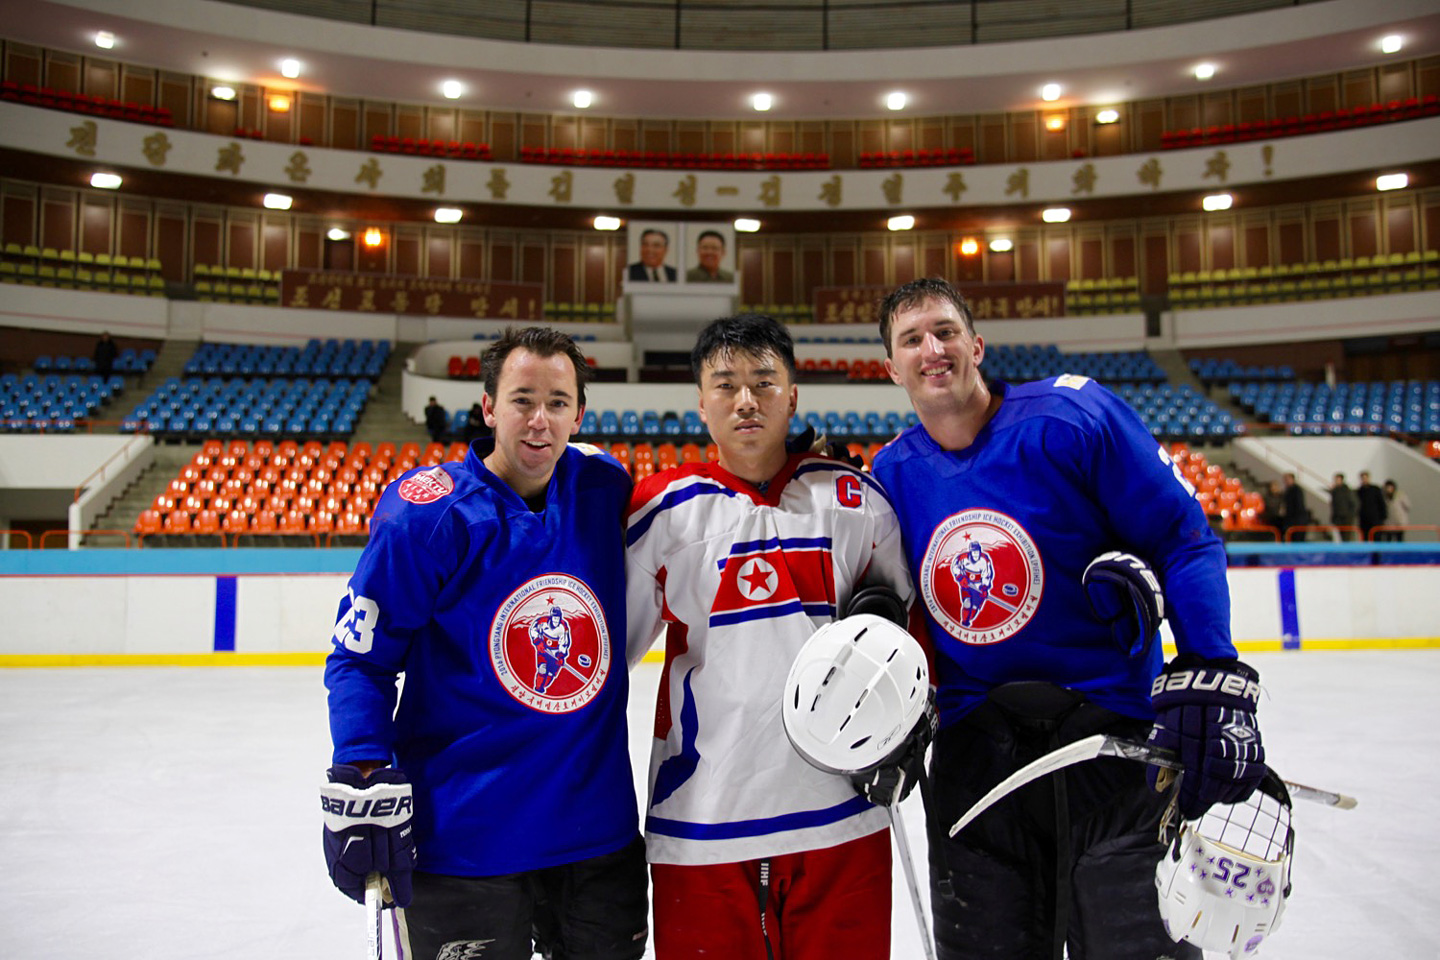 Members of the Pyongyang Ice Hockey including players from the DPRK national team and foreign tourists. (Courtesy Howe International Friendship League)